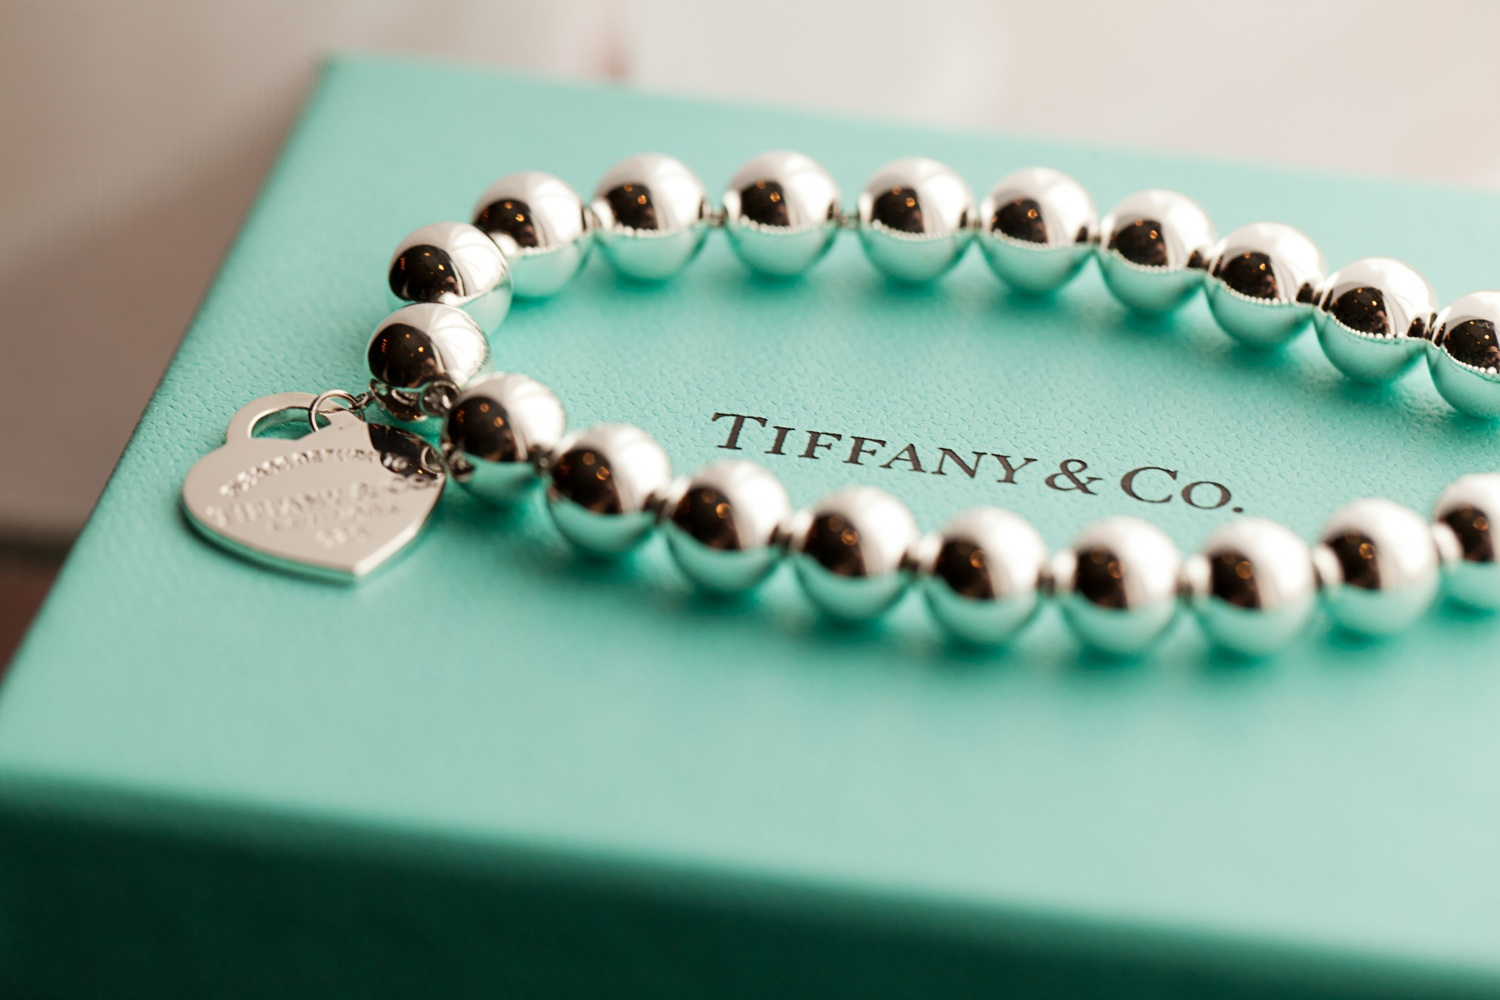 Wedding Gift For Bride From Groom Jewelry : wedding-gift-for-bride-tiffany-bridal-jewelry.jpg